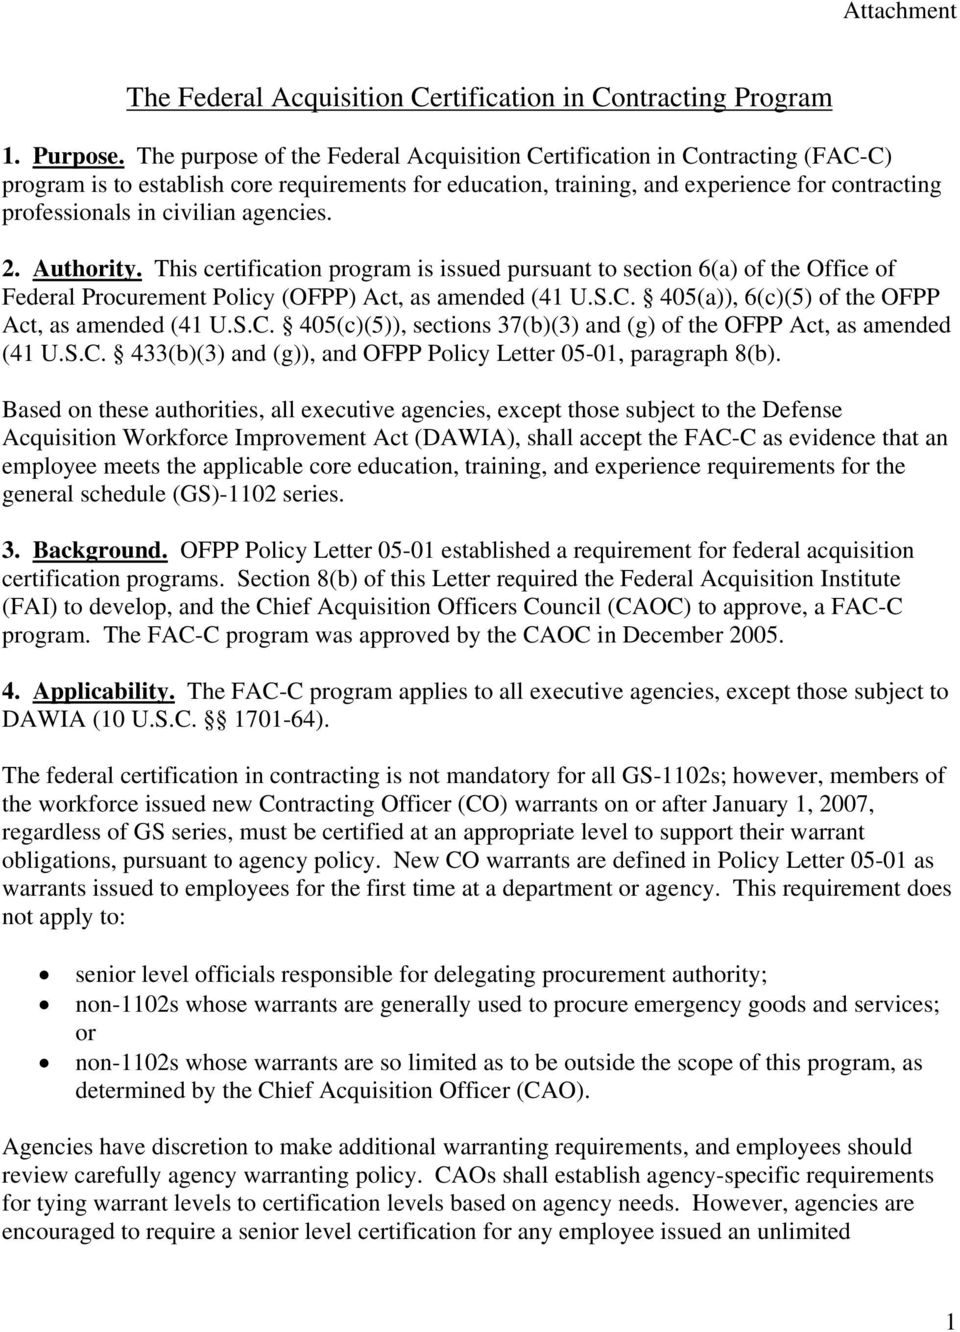 The Federal Acquisition Certification In Contracting Program Pdf